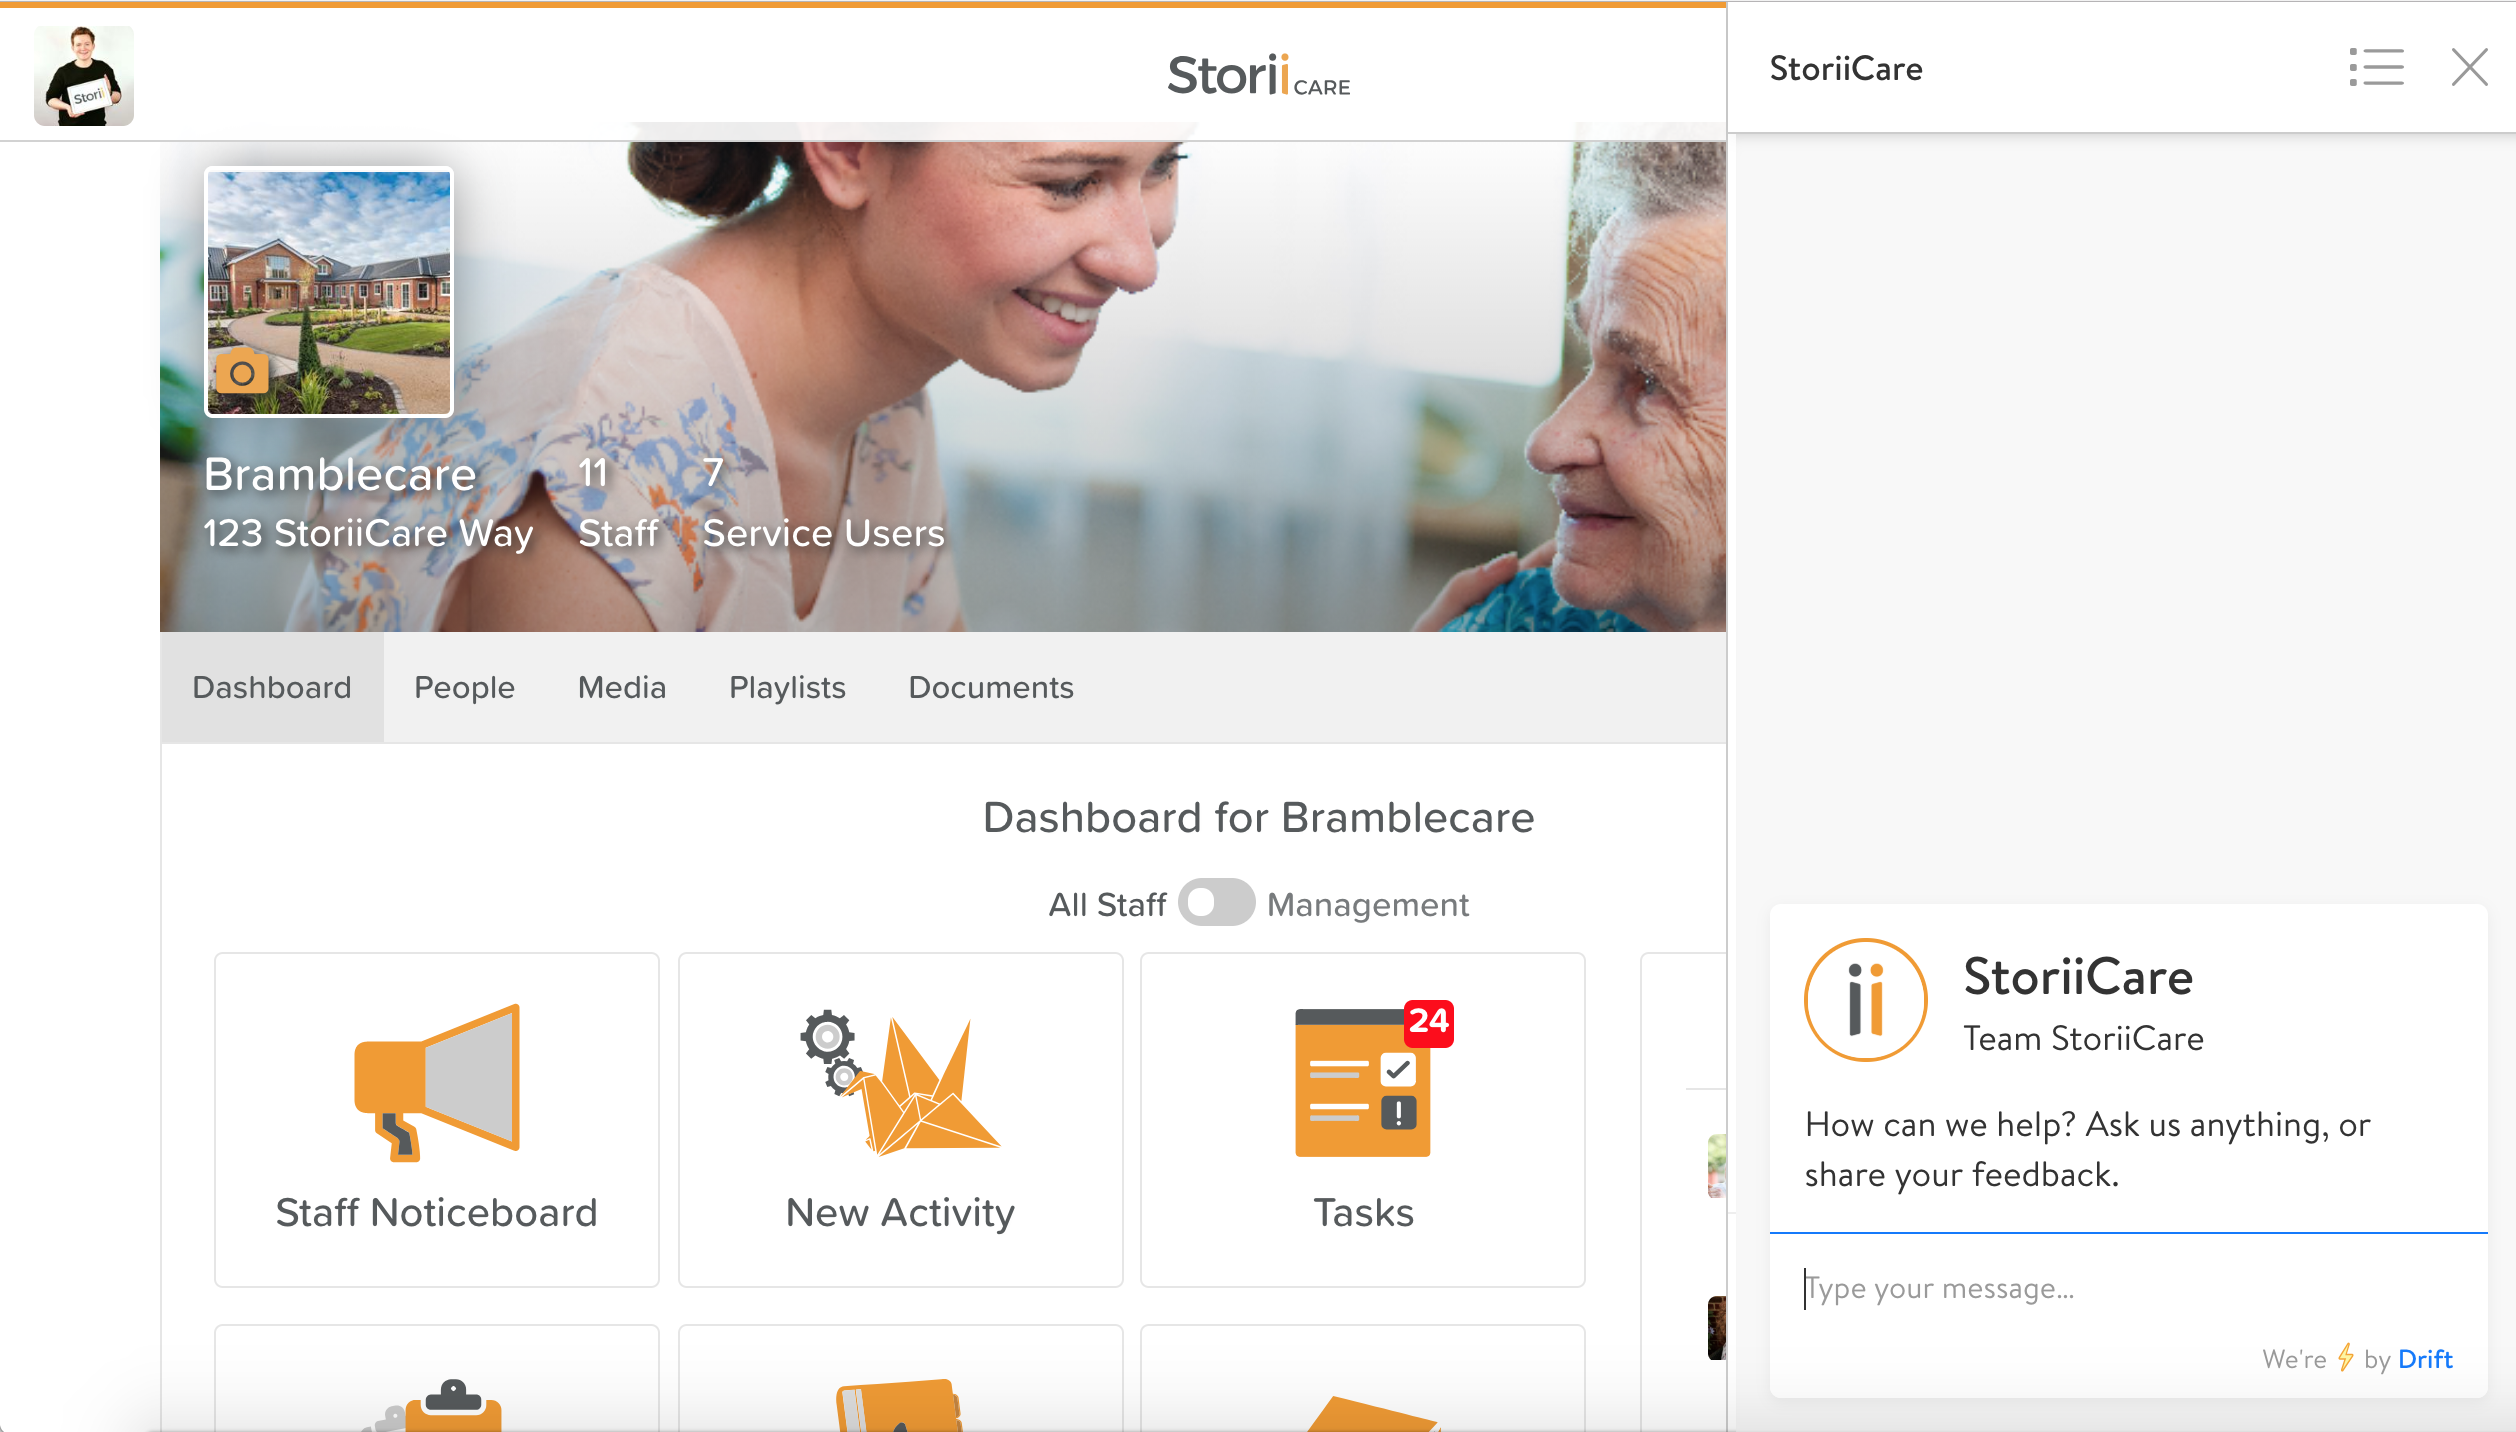 StoriiCare Live Chat